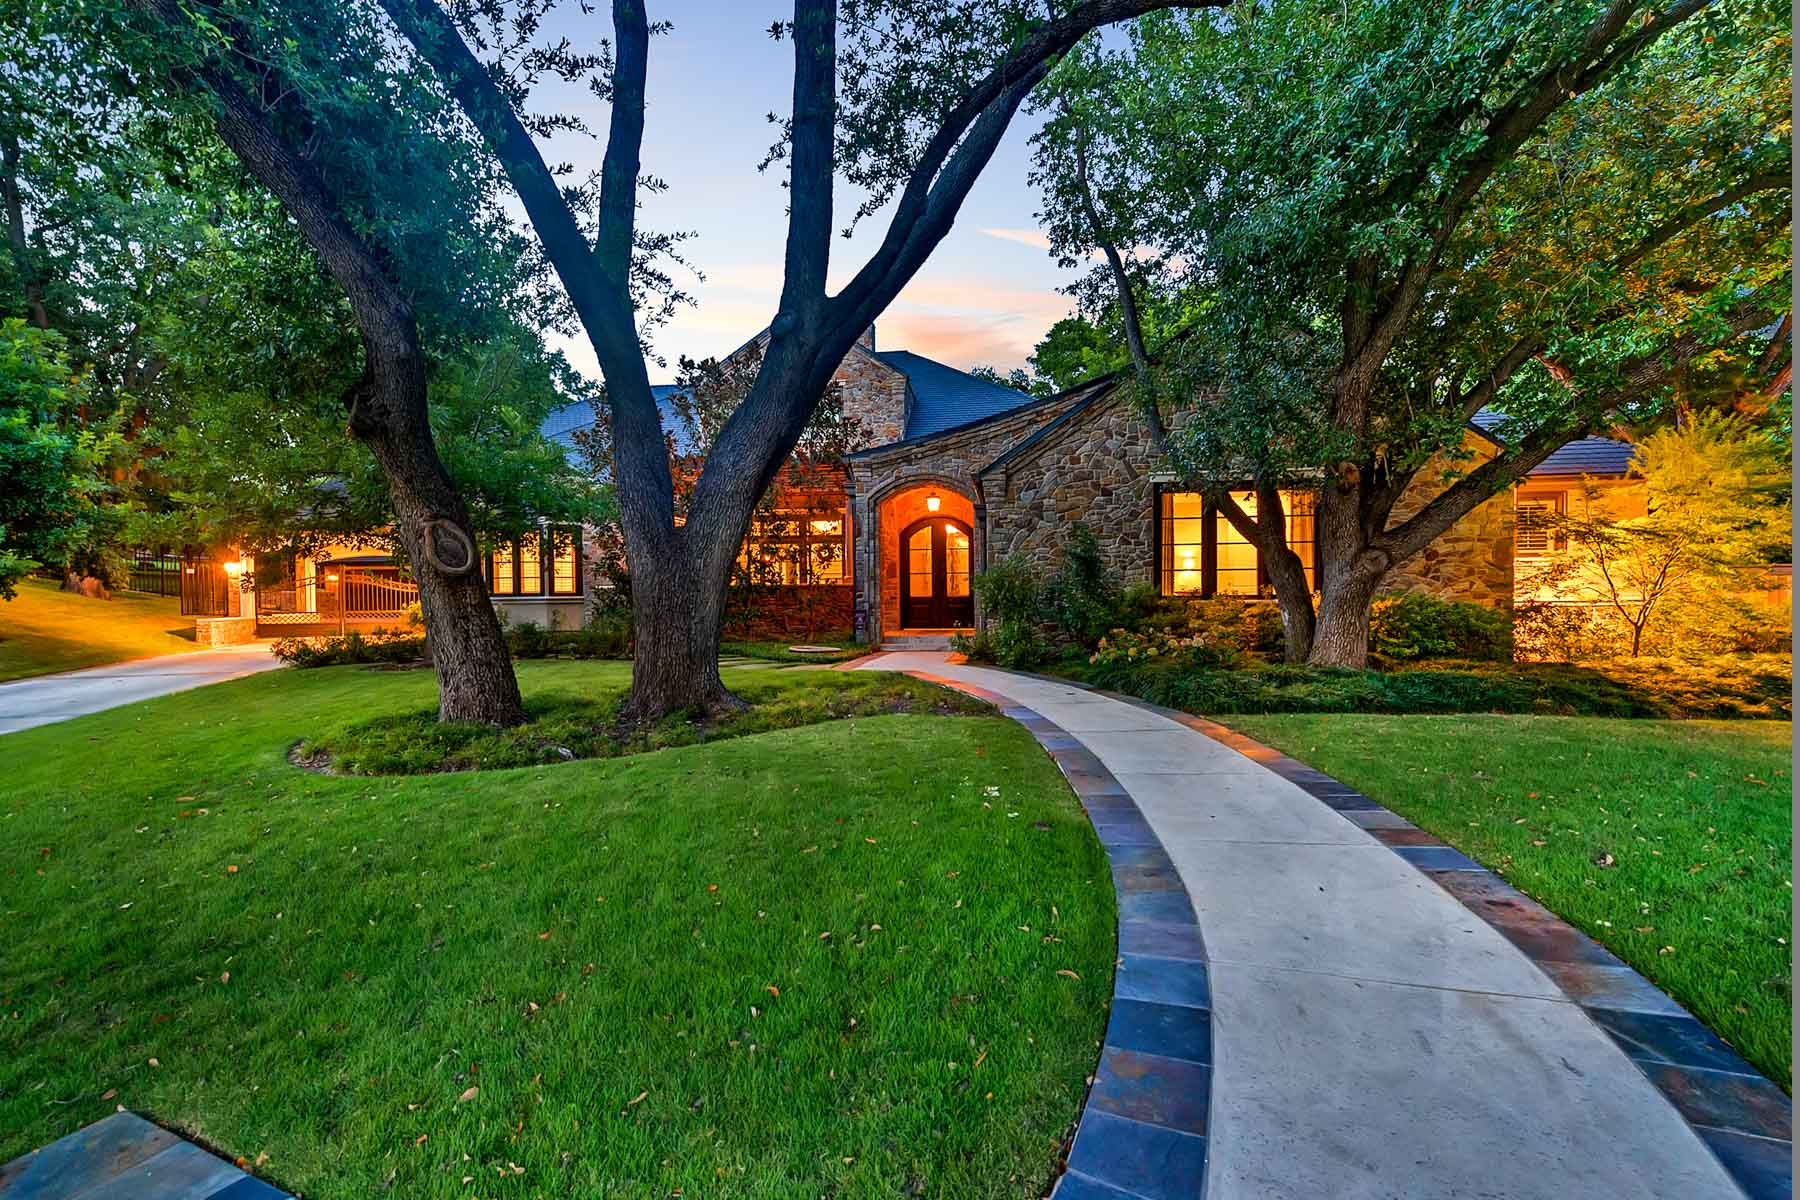 Casa Unifamiliar por un Venta en Ridgmar Traditional 1701 Dakar Rd Fort Worth, Texas, 76116 Estados Unidos